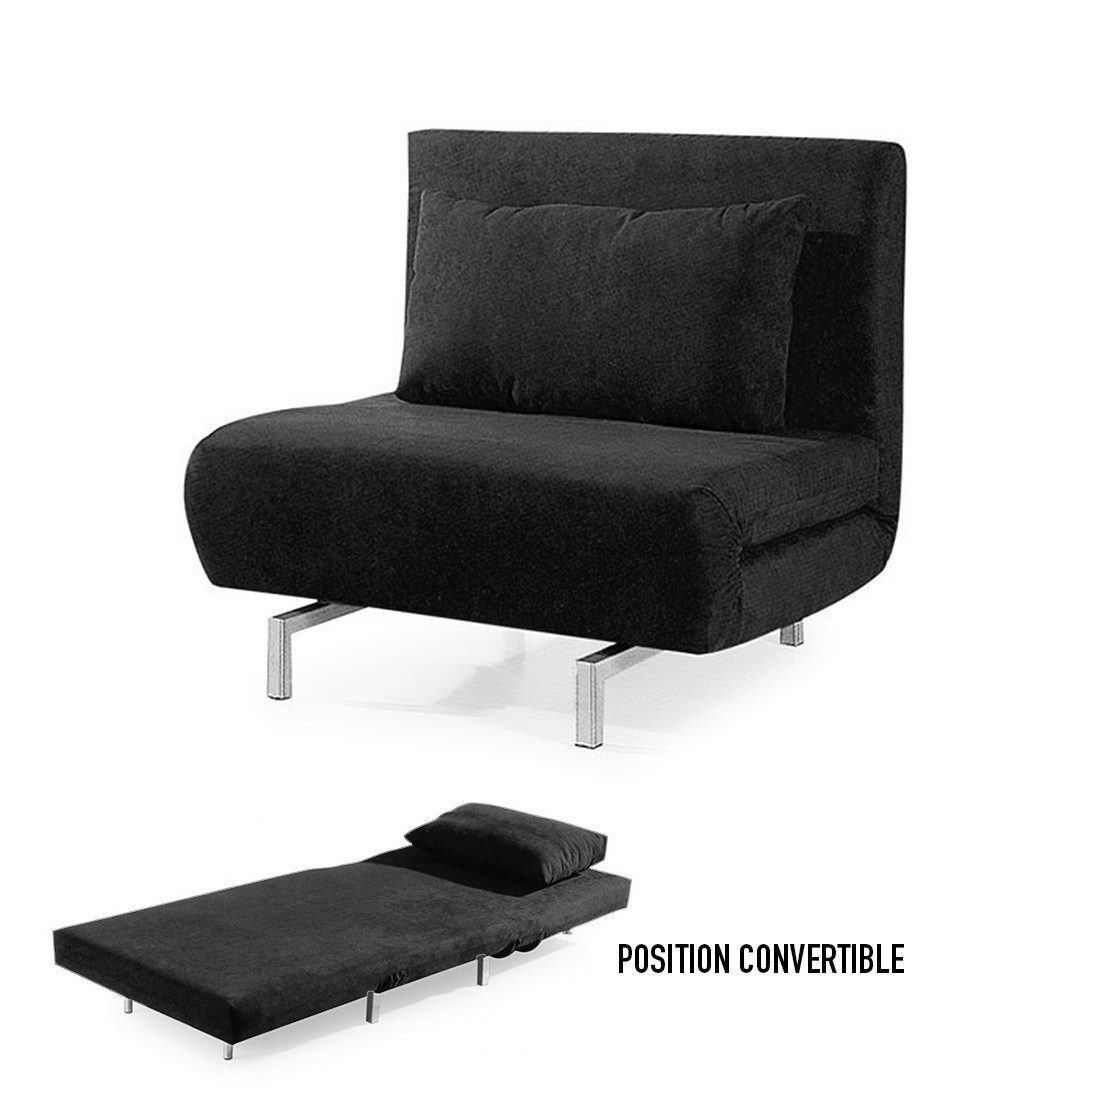 fauteuil convertible 1 personne fauteuil lit convertible. Black Bedroom Furniture Sets. Home Design Ideas